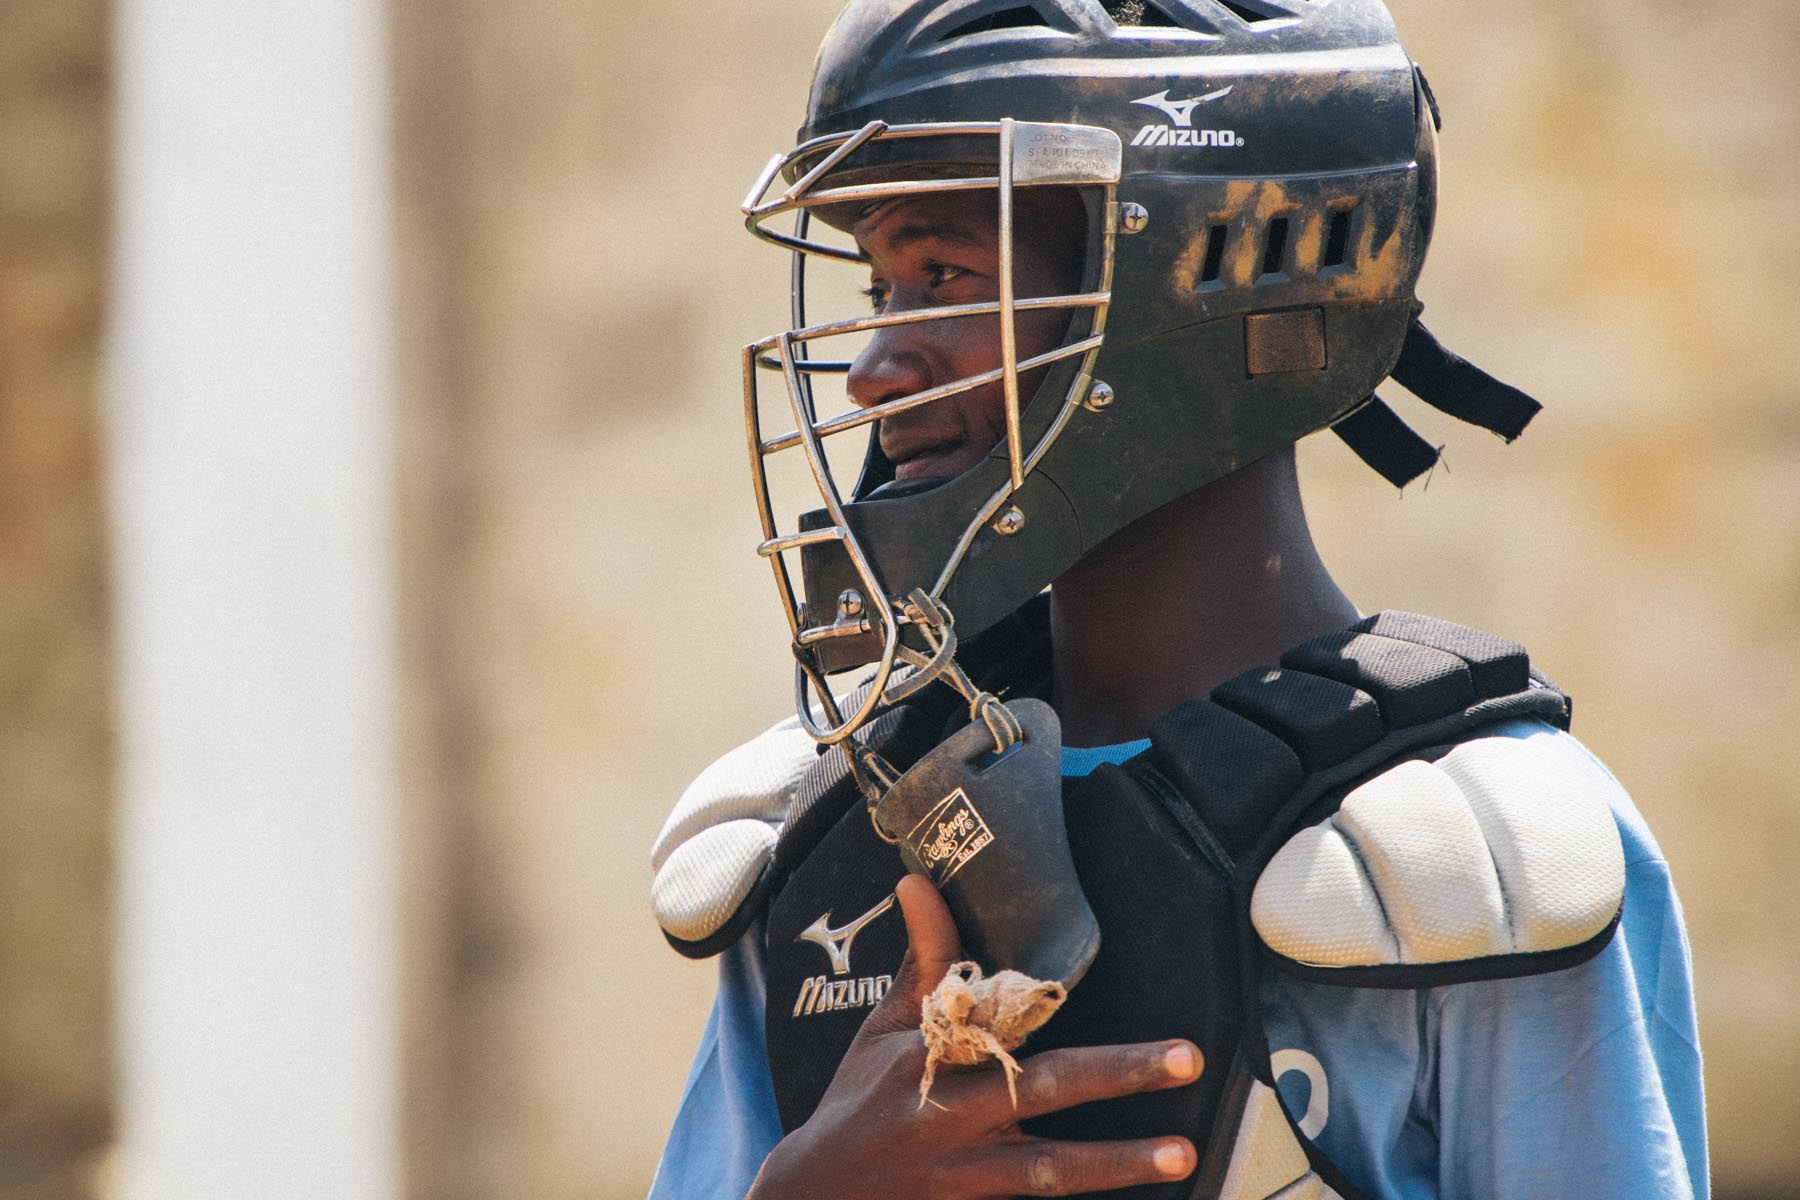 HKP-UgandaBaseball-Day8-2611.jpg